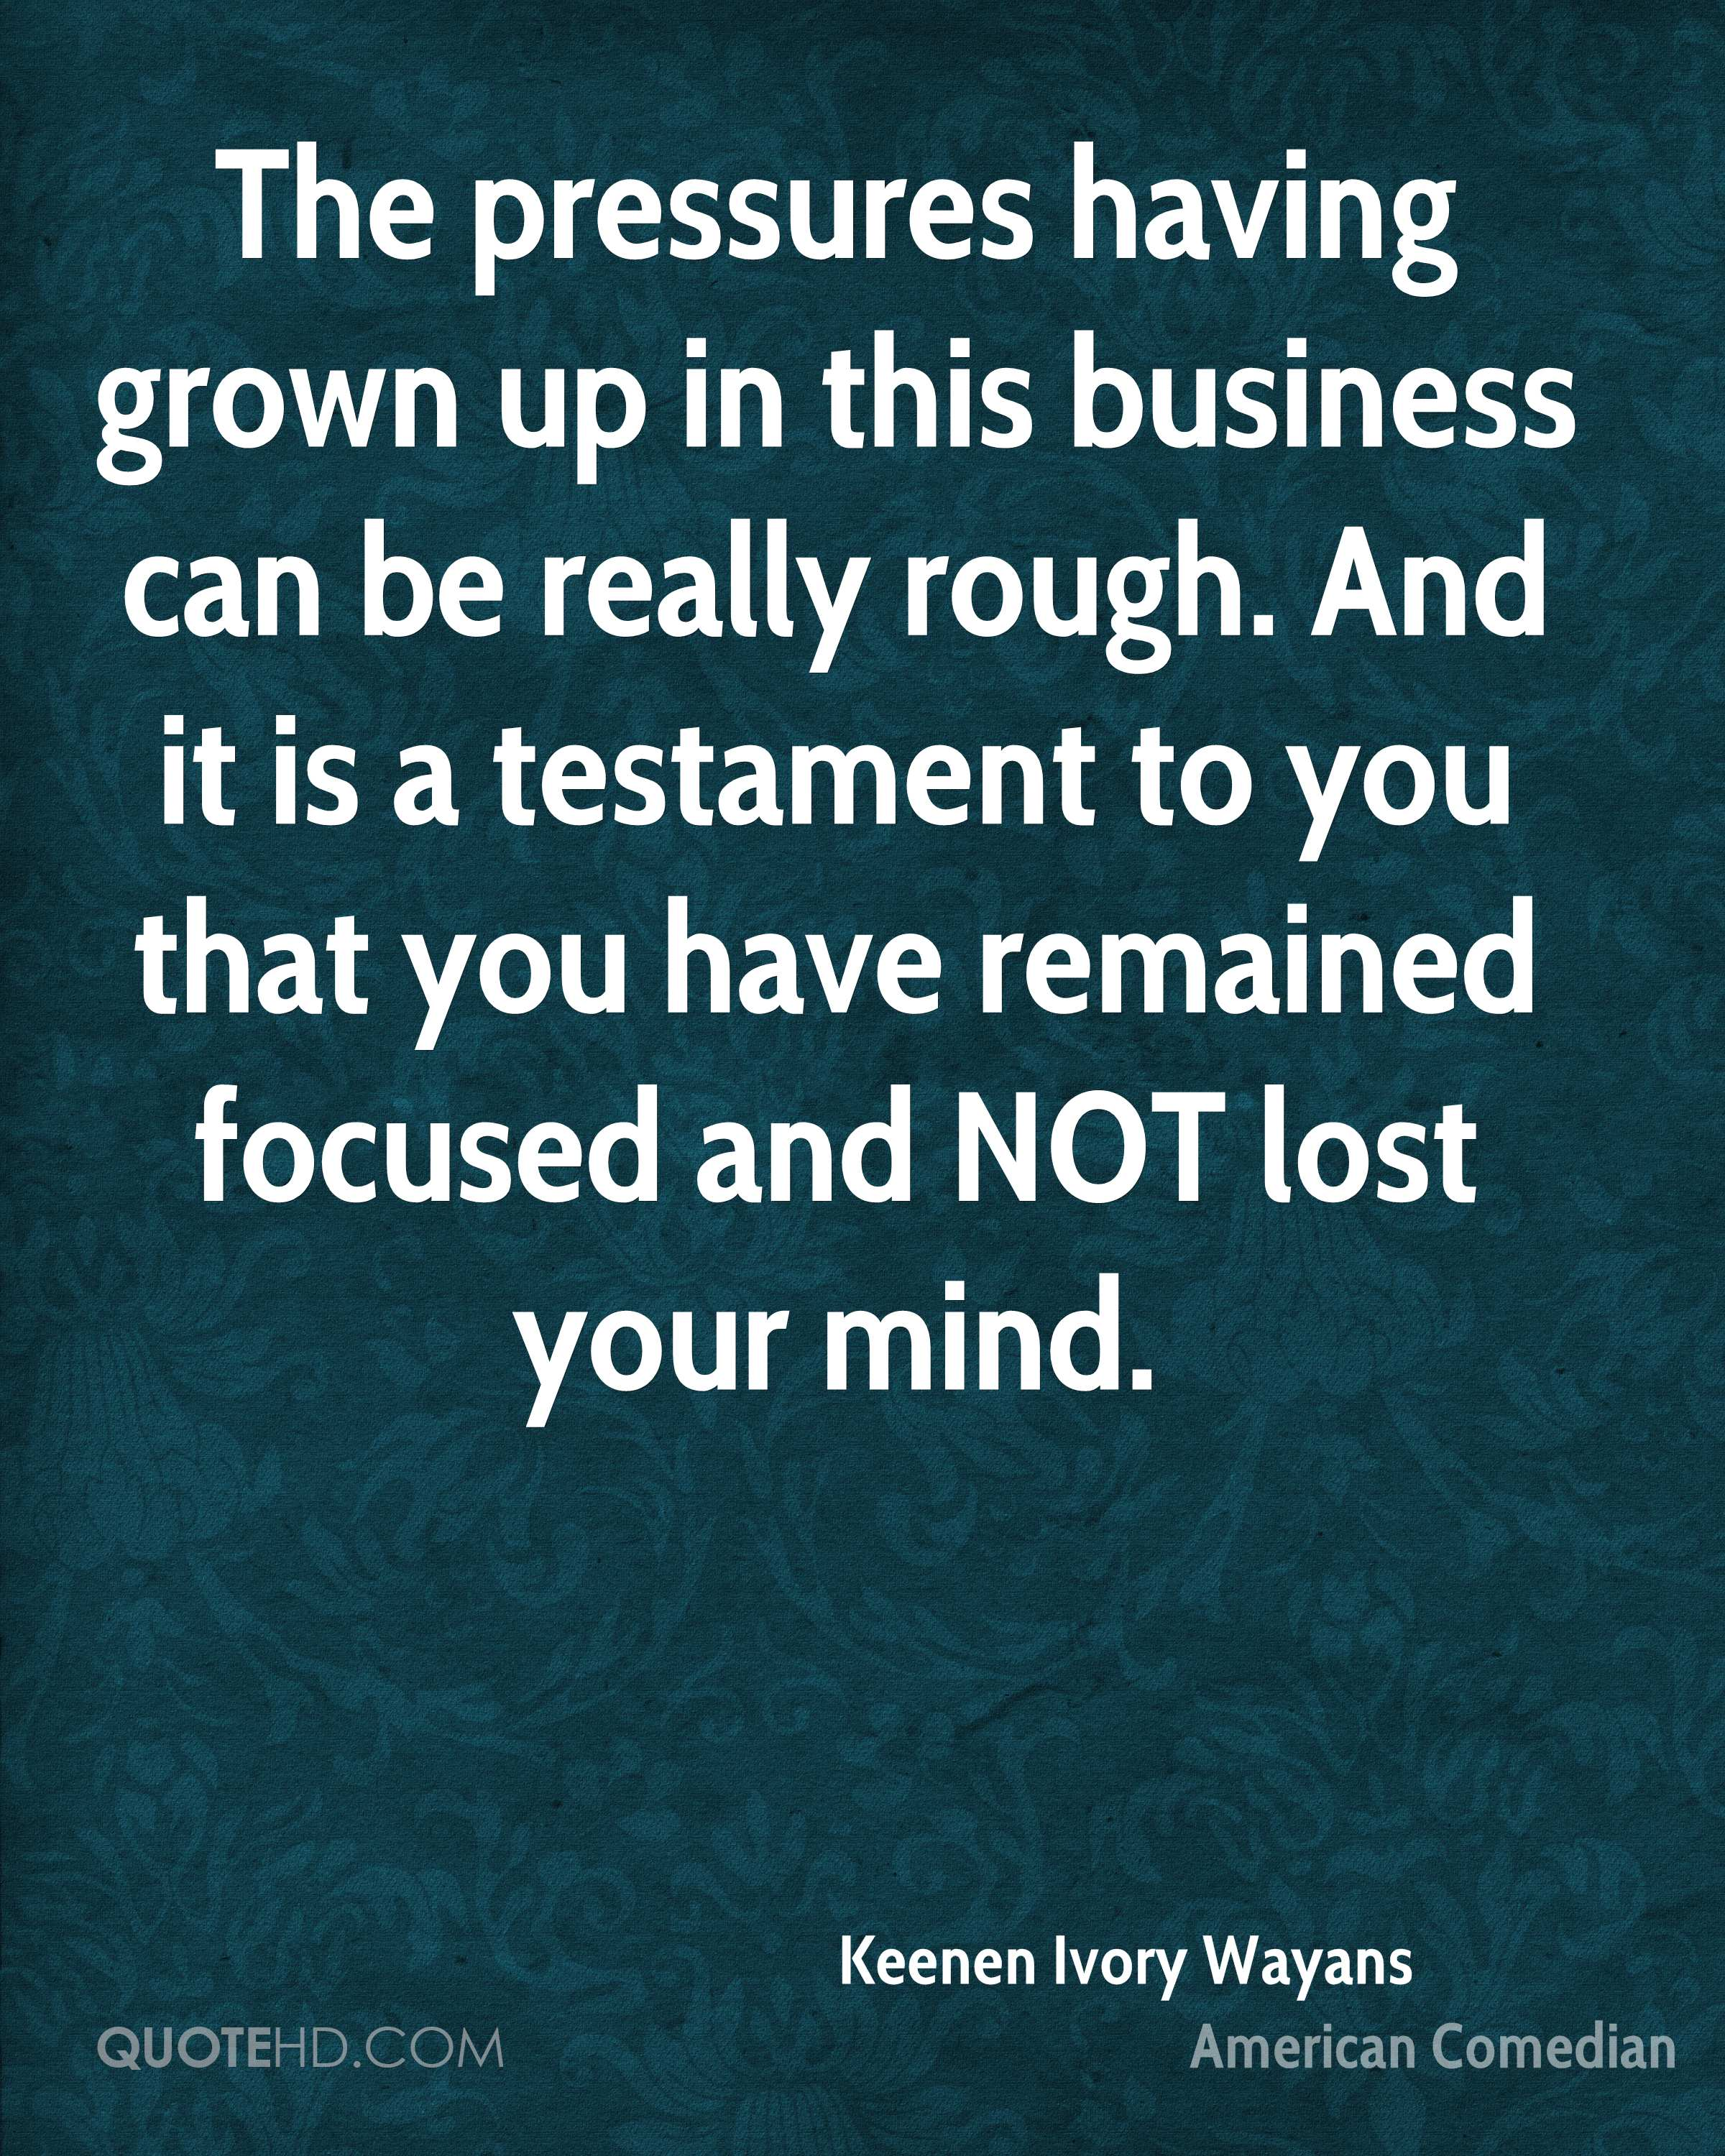 The pressures having grown up in this business can be really rough. And it is a testament to you that you have remained focused and NOT lost your mind.